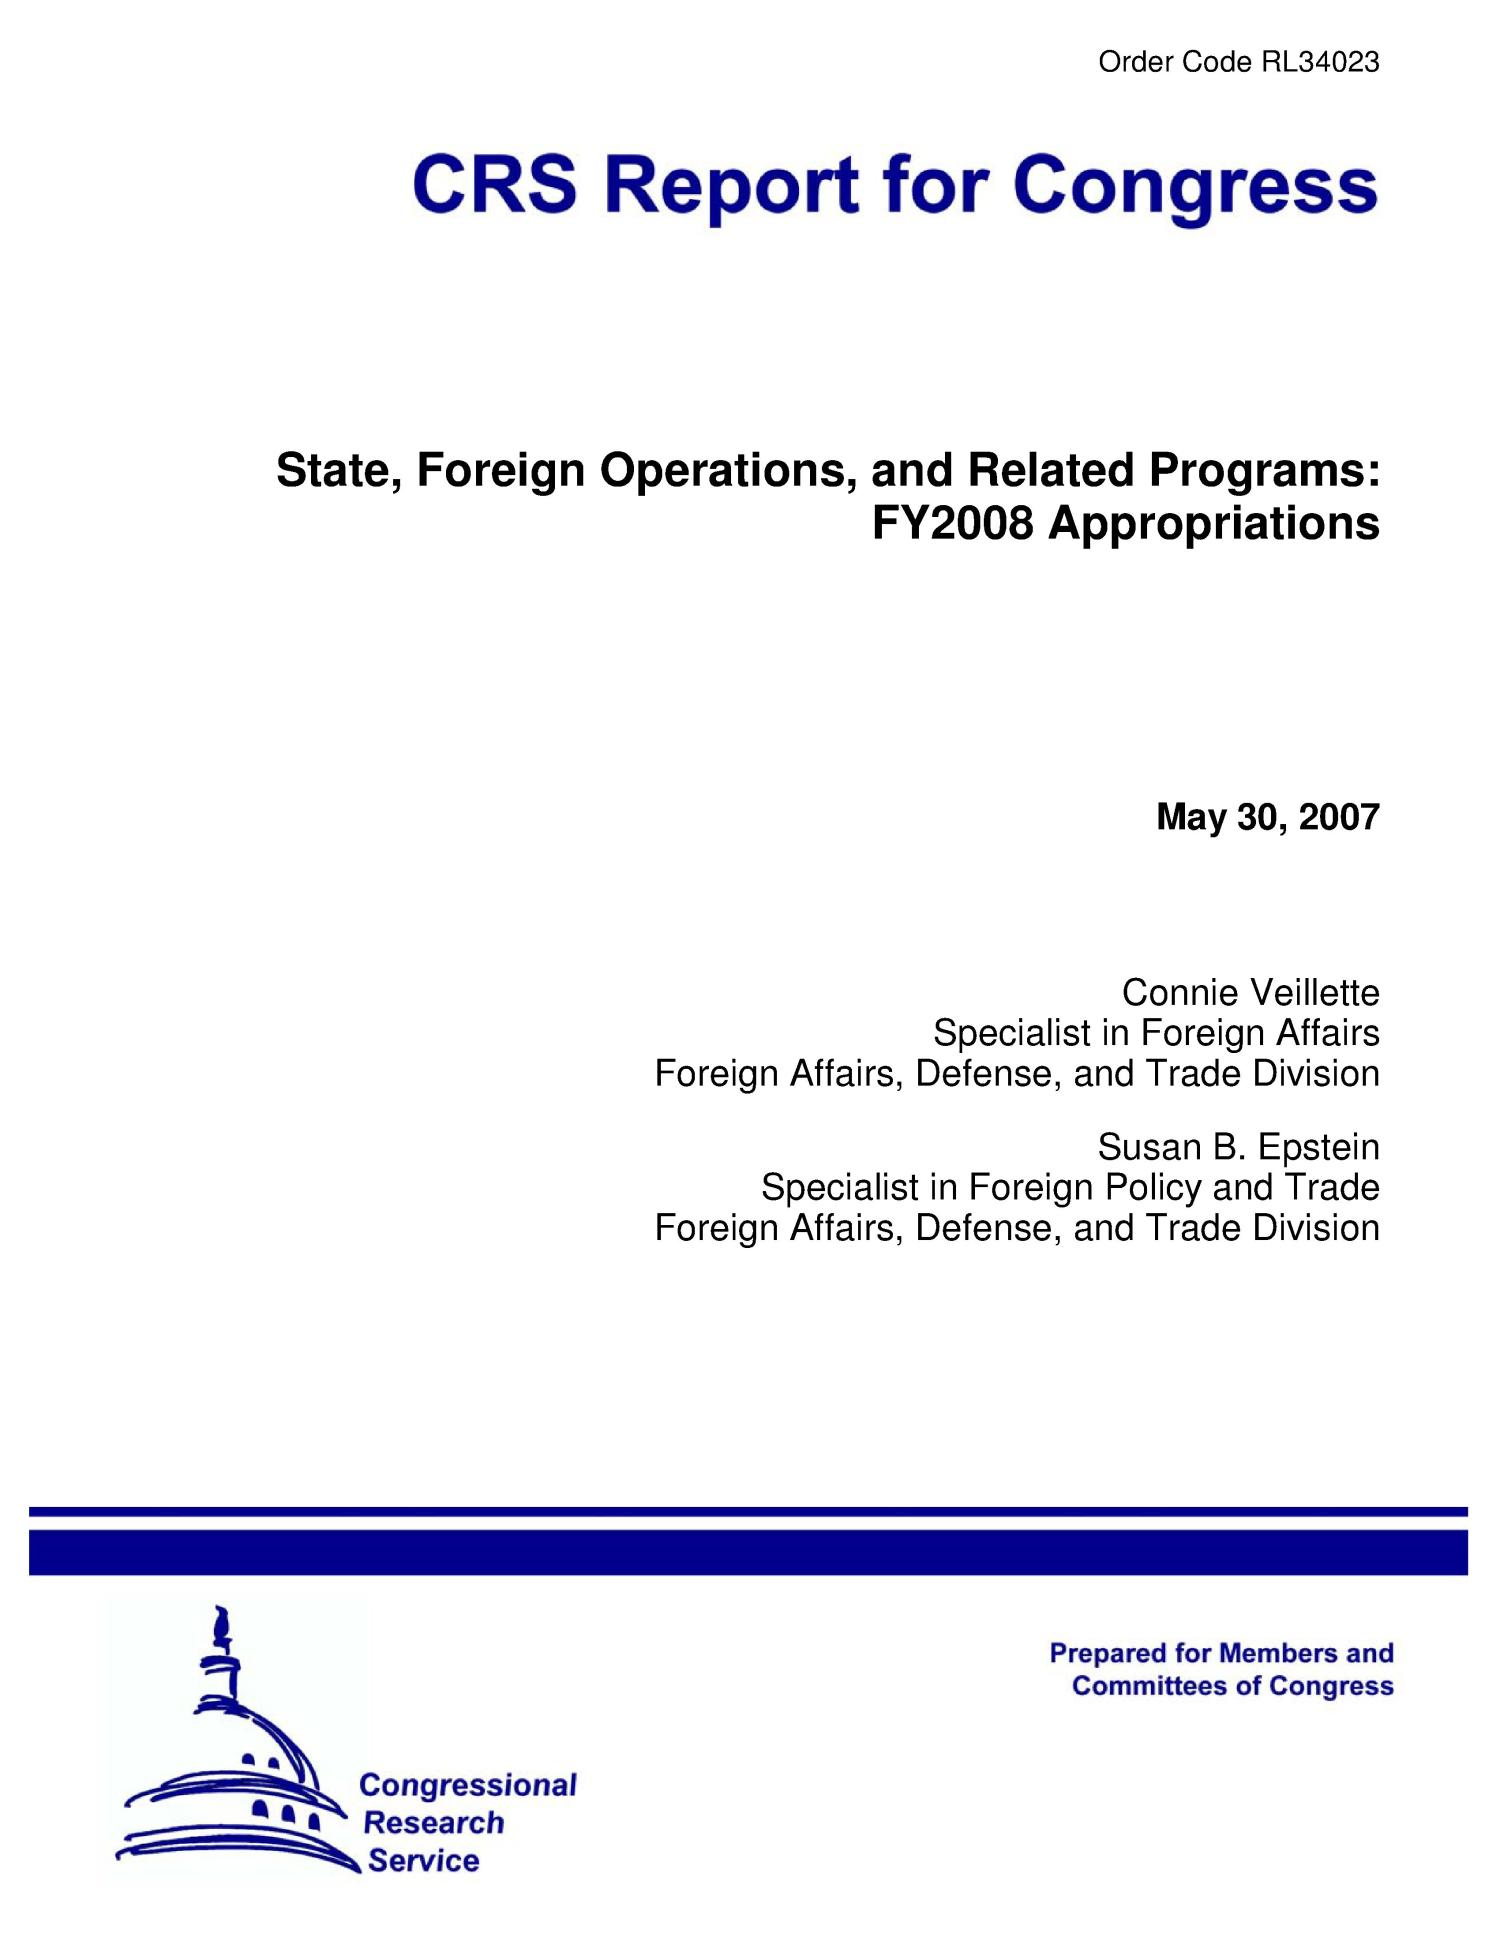 State, Foreign Operations, and Related Programs: FY2008 Appropriations                                                                                                      [Sequence #]: 1 of 42